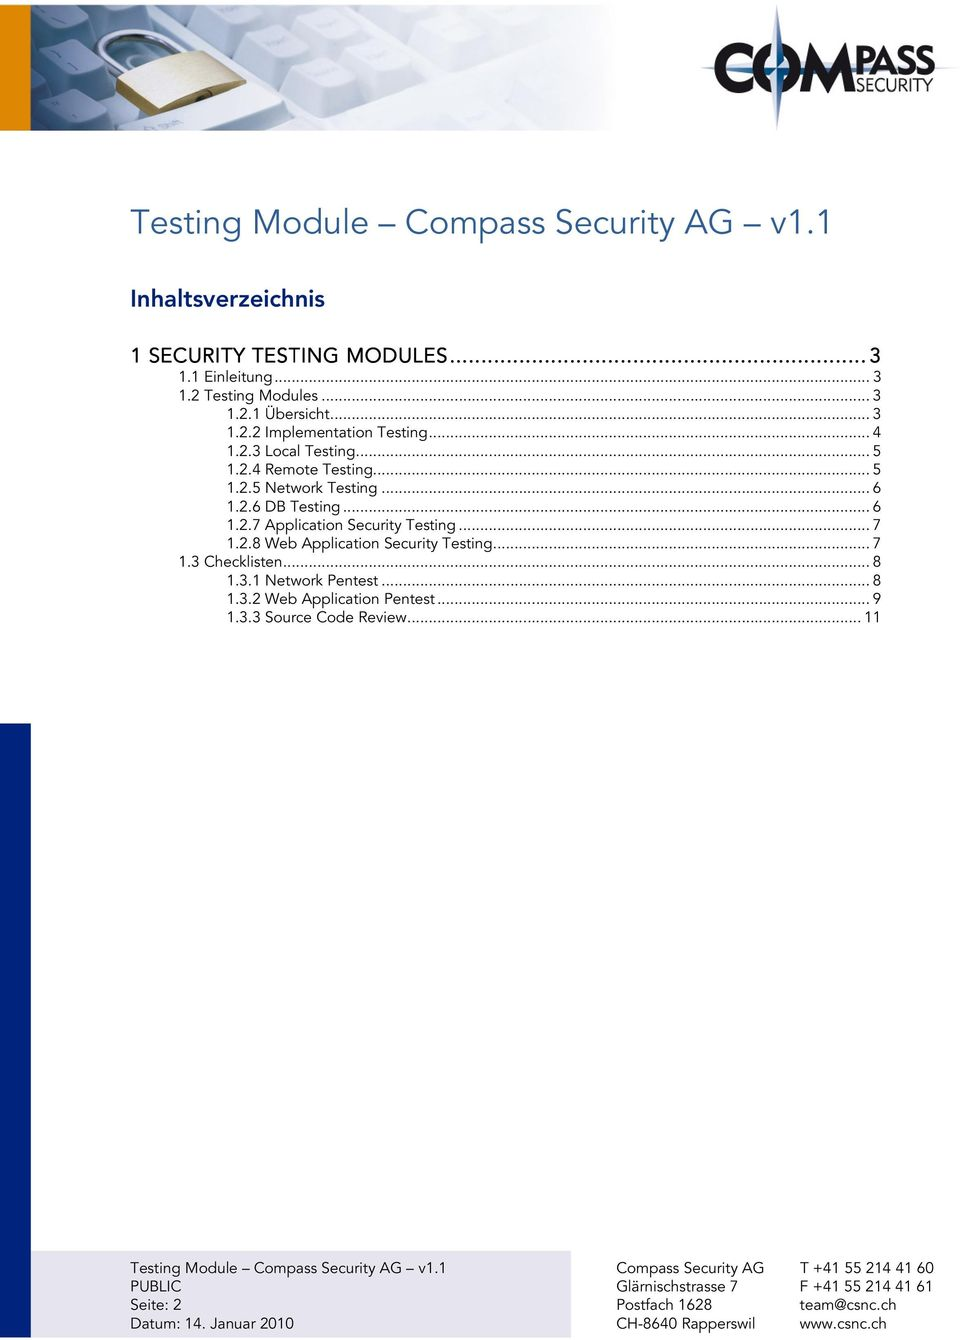 .. 6 1.2.6 DB Testing... 6 1.2.7 Application Security Testing... 7 1.2.8 Web Application Security Testing... 7 1.3 Checklisten.